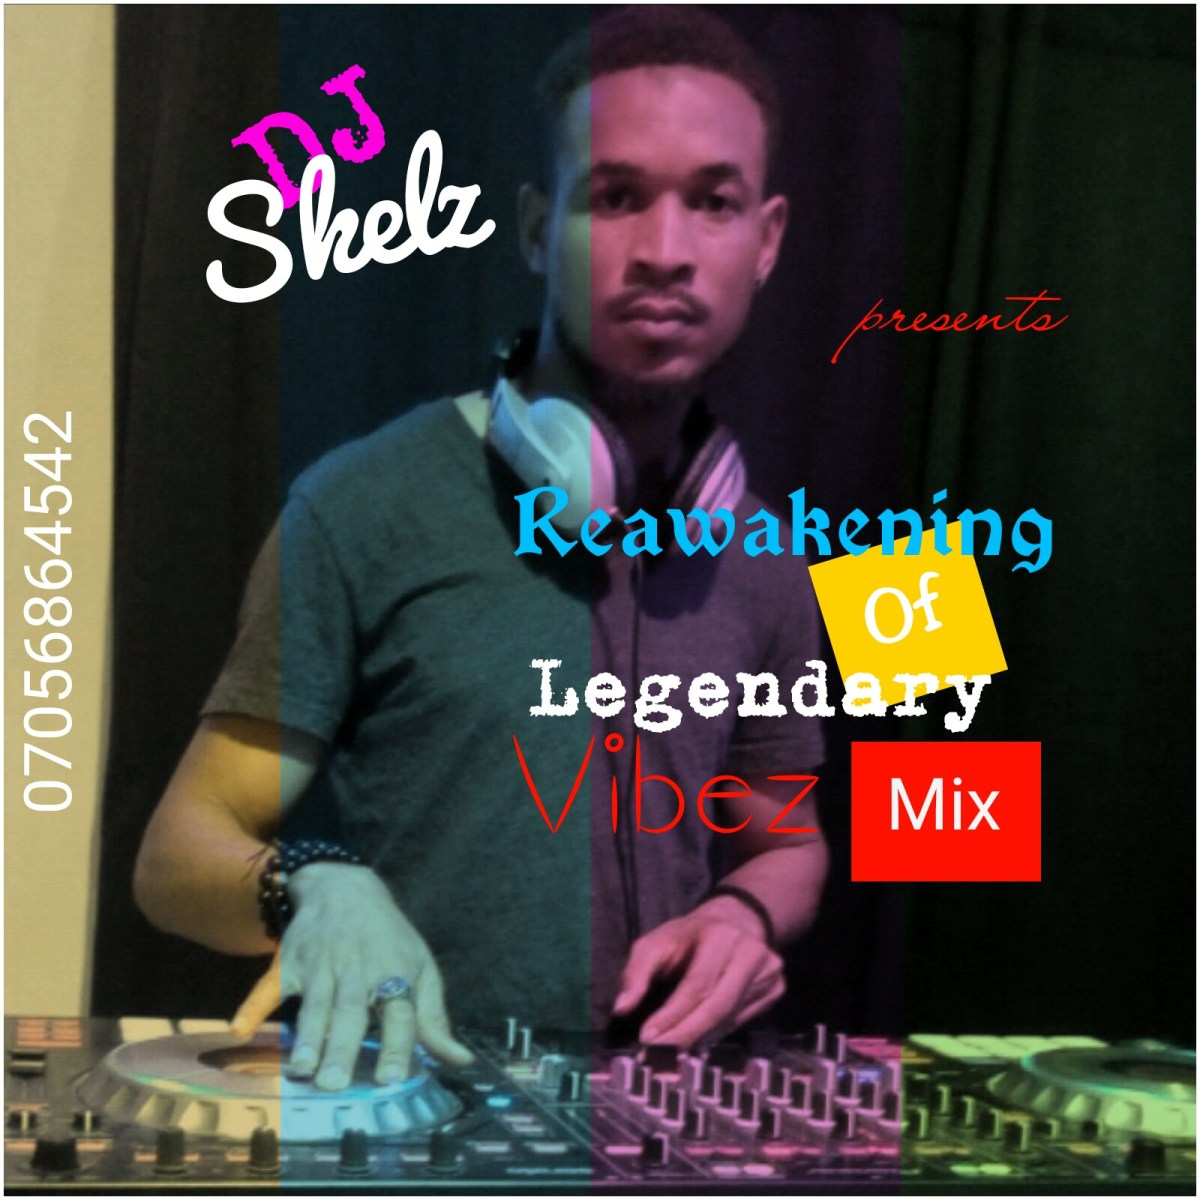 Mixtape : DJ Skelz Reawakening of Legendary Vibez Mix (1)